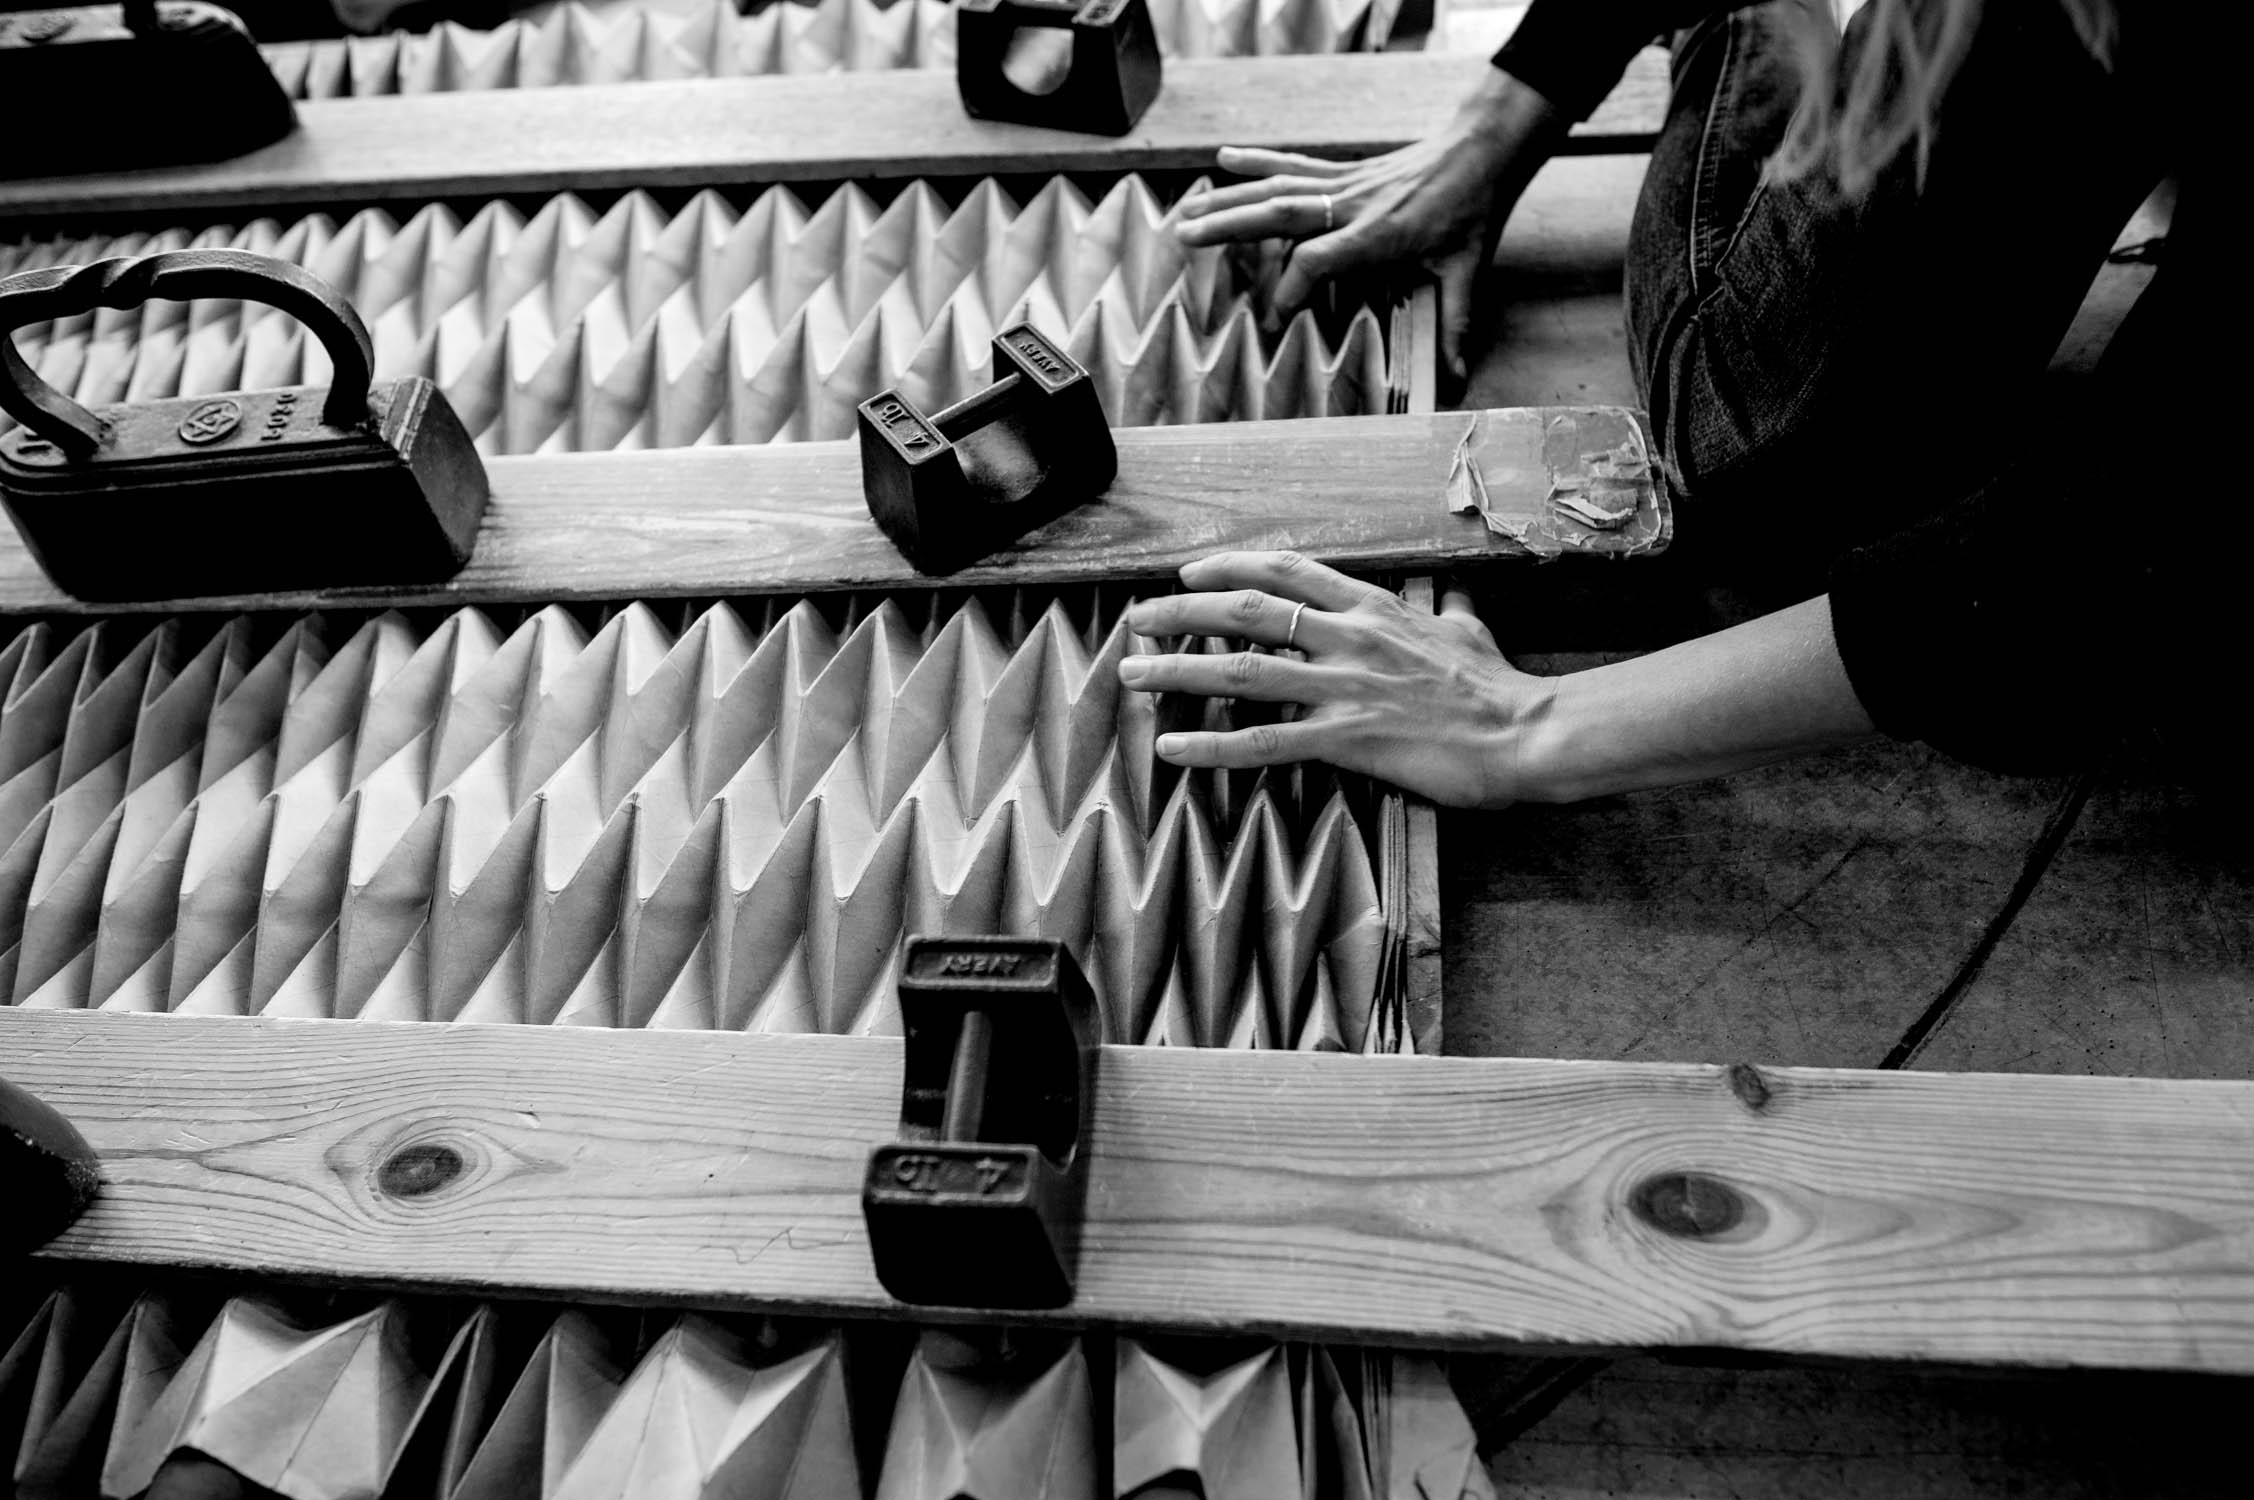 Pleating and Unfolding in process, at Jule Waibel's studio